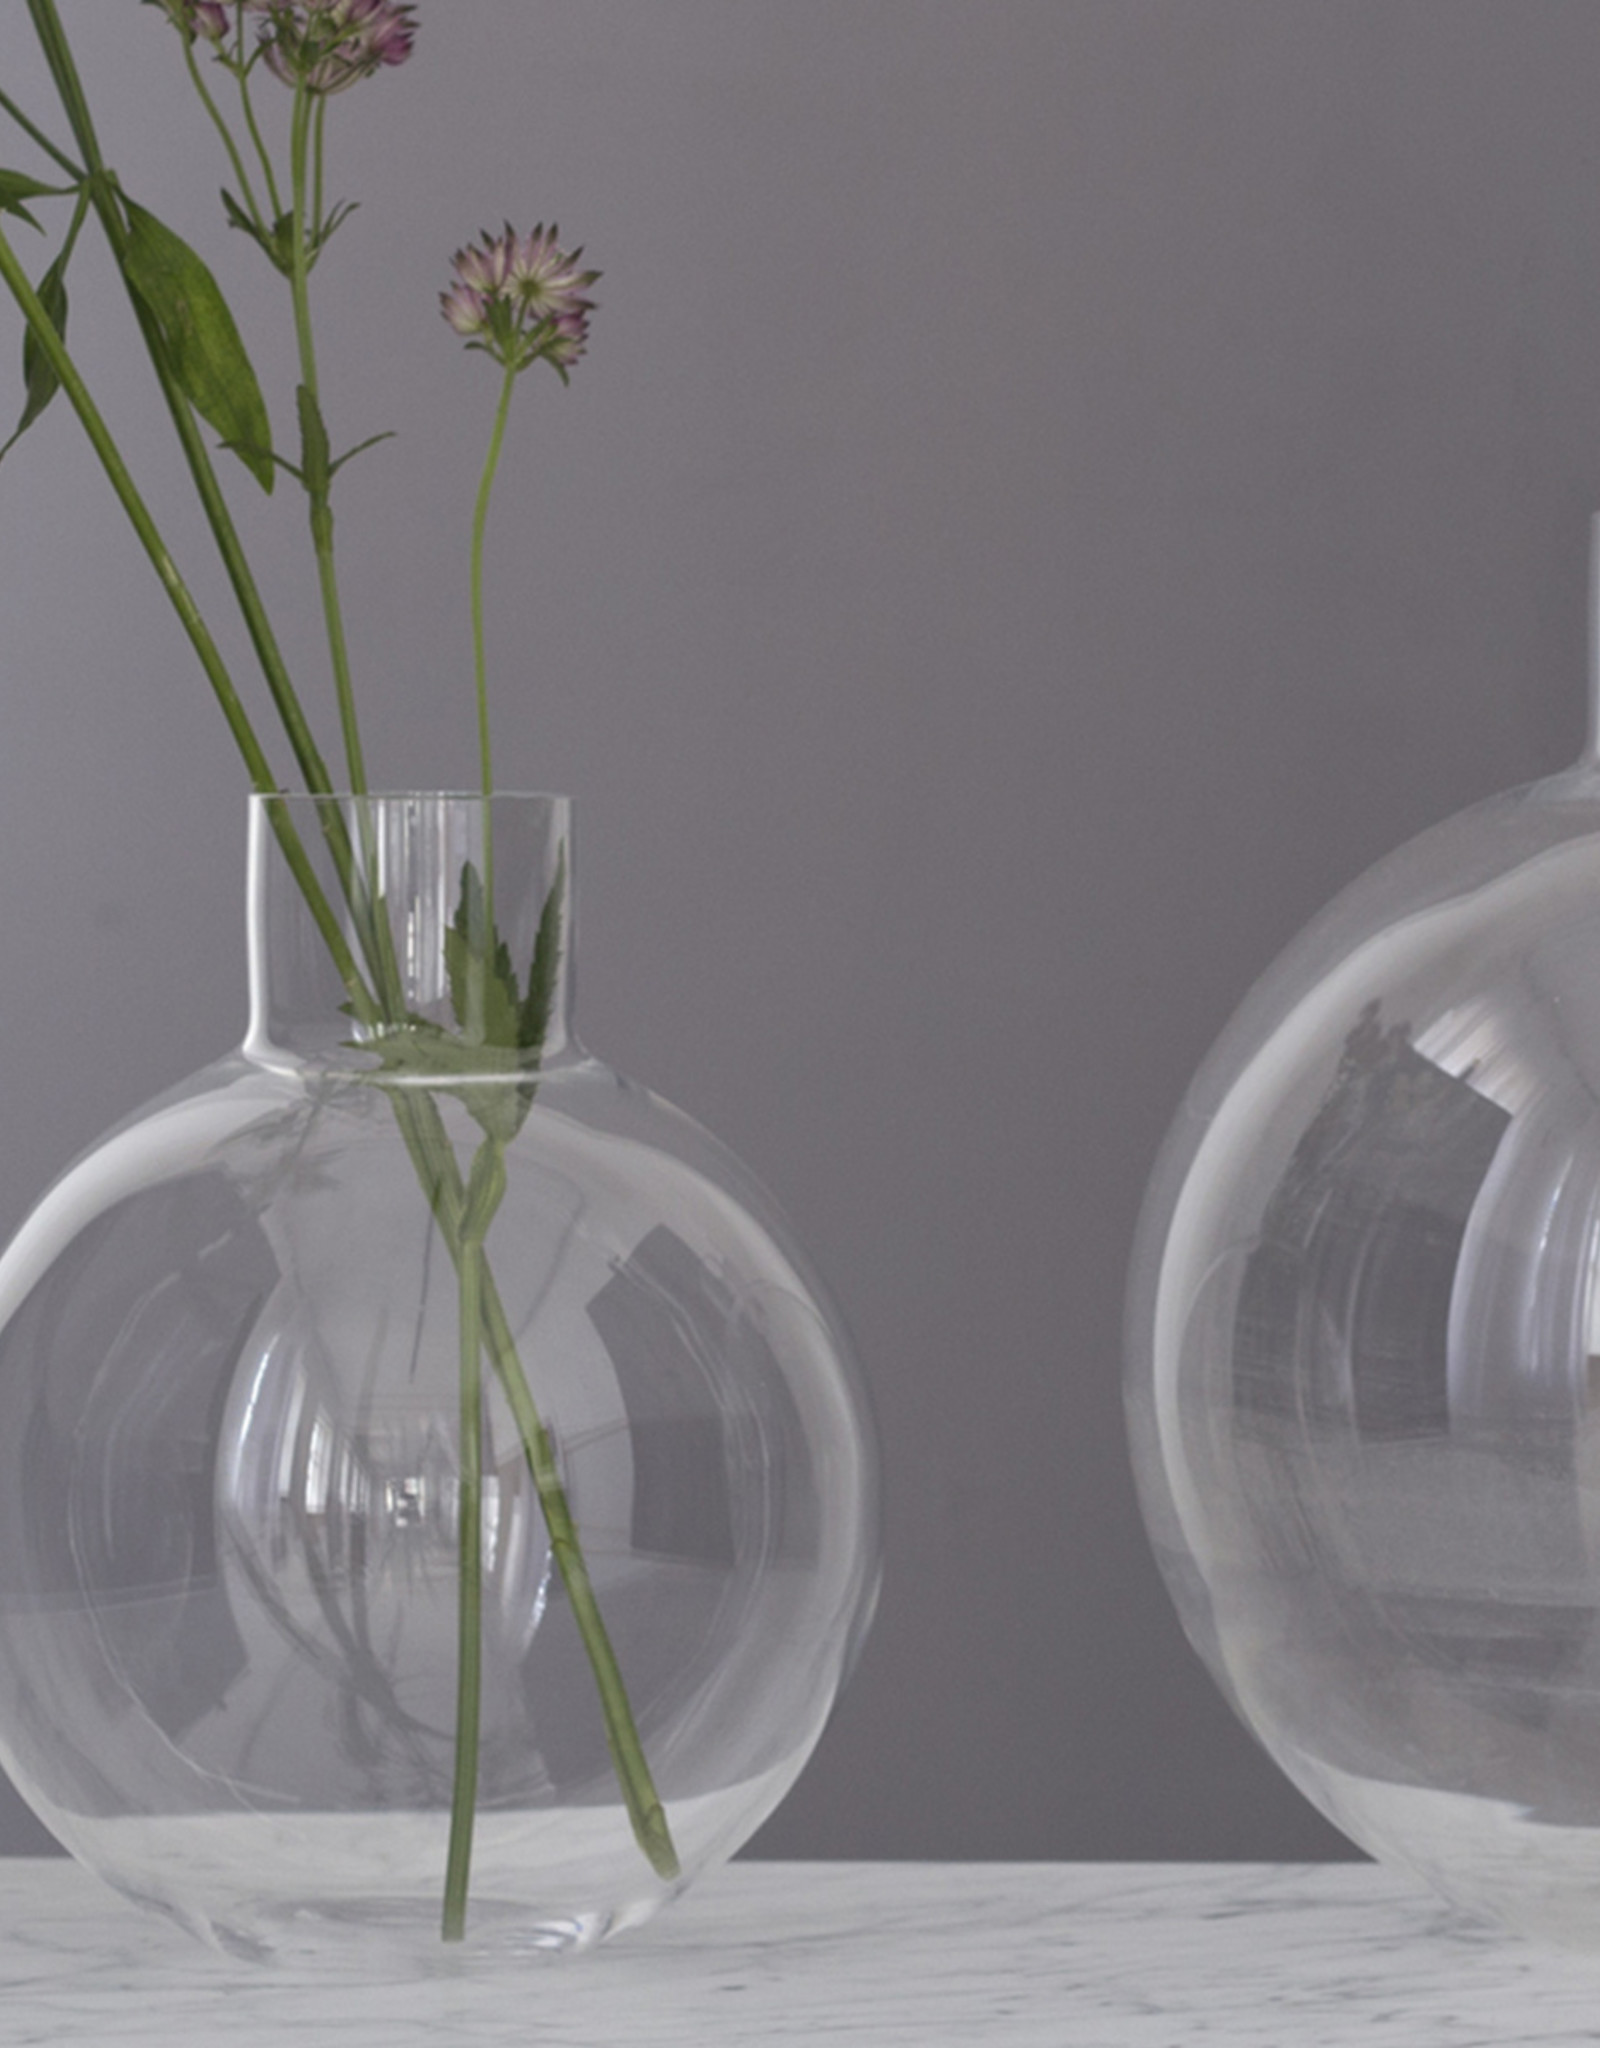 Vases Pallo vase by Carina Seth Andersson | Large